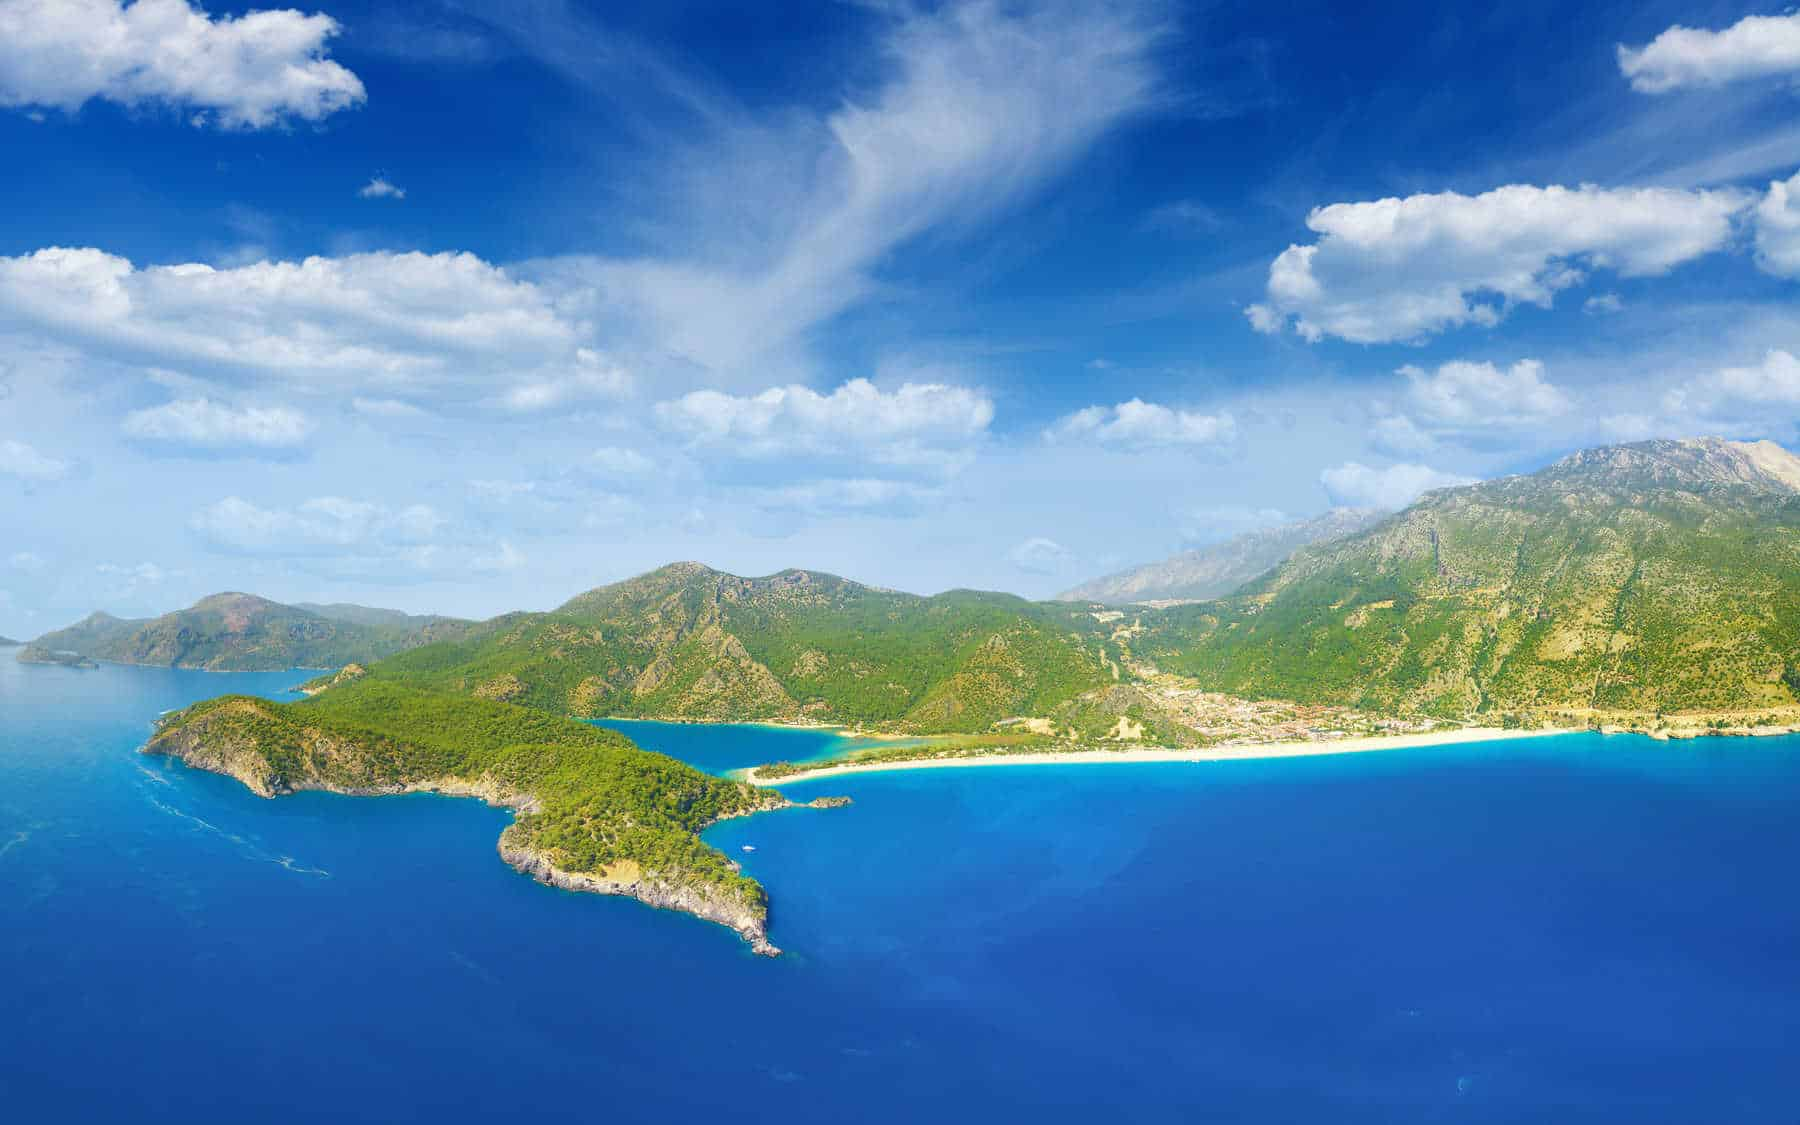 Aerial view of beautiful blue lagoon and coastline in Oludeniz, Fethiye district, Turquoise Coast of southwestern Turkey